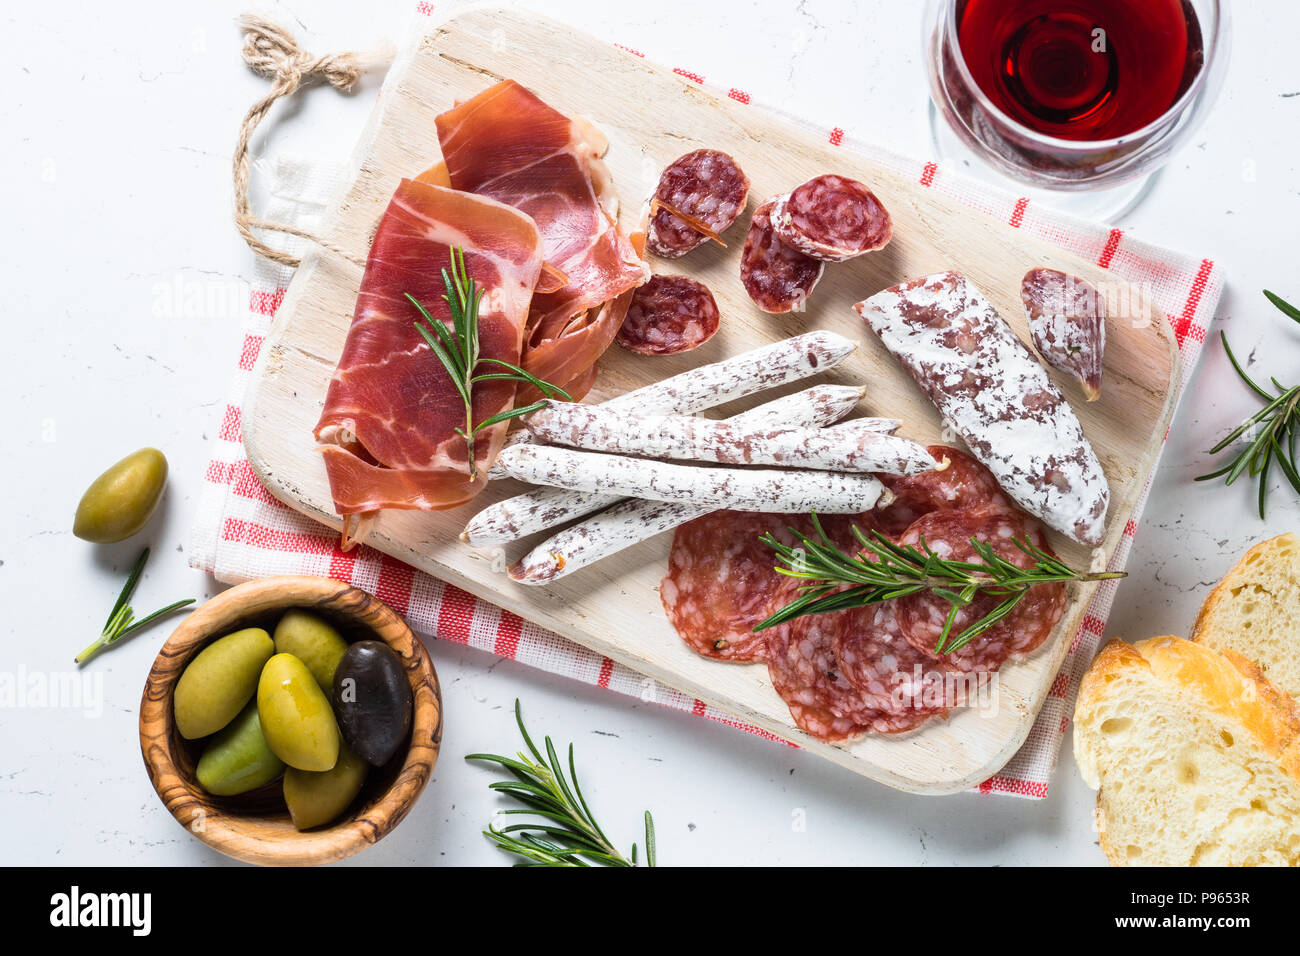 Antipasto. Traditional italian antipasto, sliced meat, appetizer on wooden cutting board on white table. Top view. - Stock Image